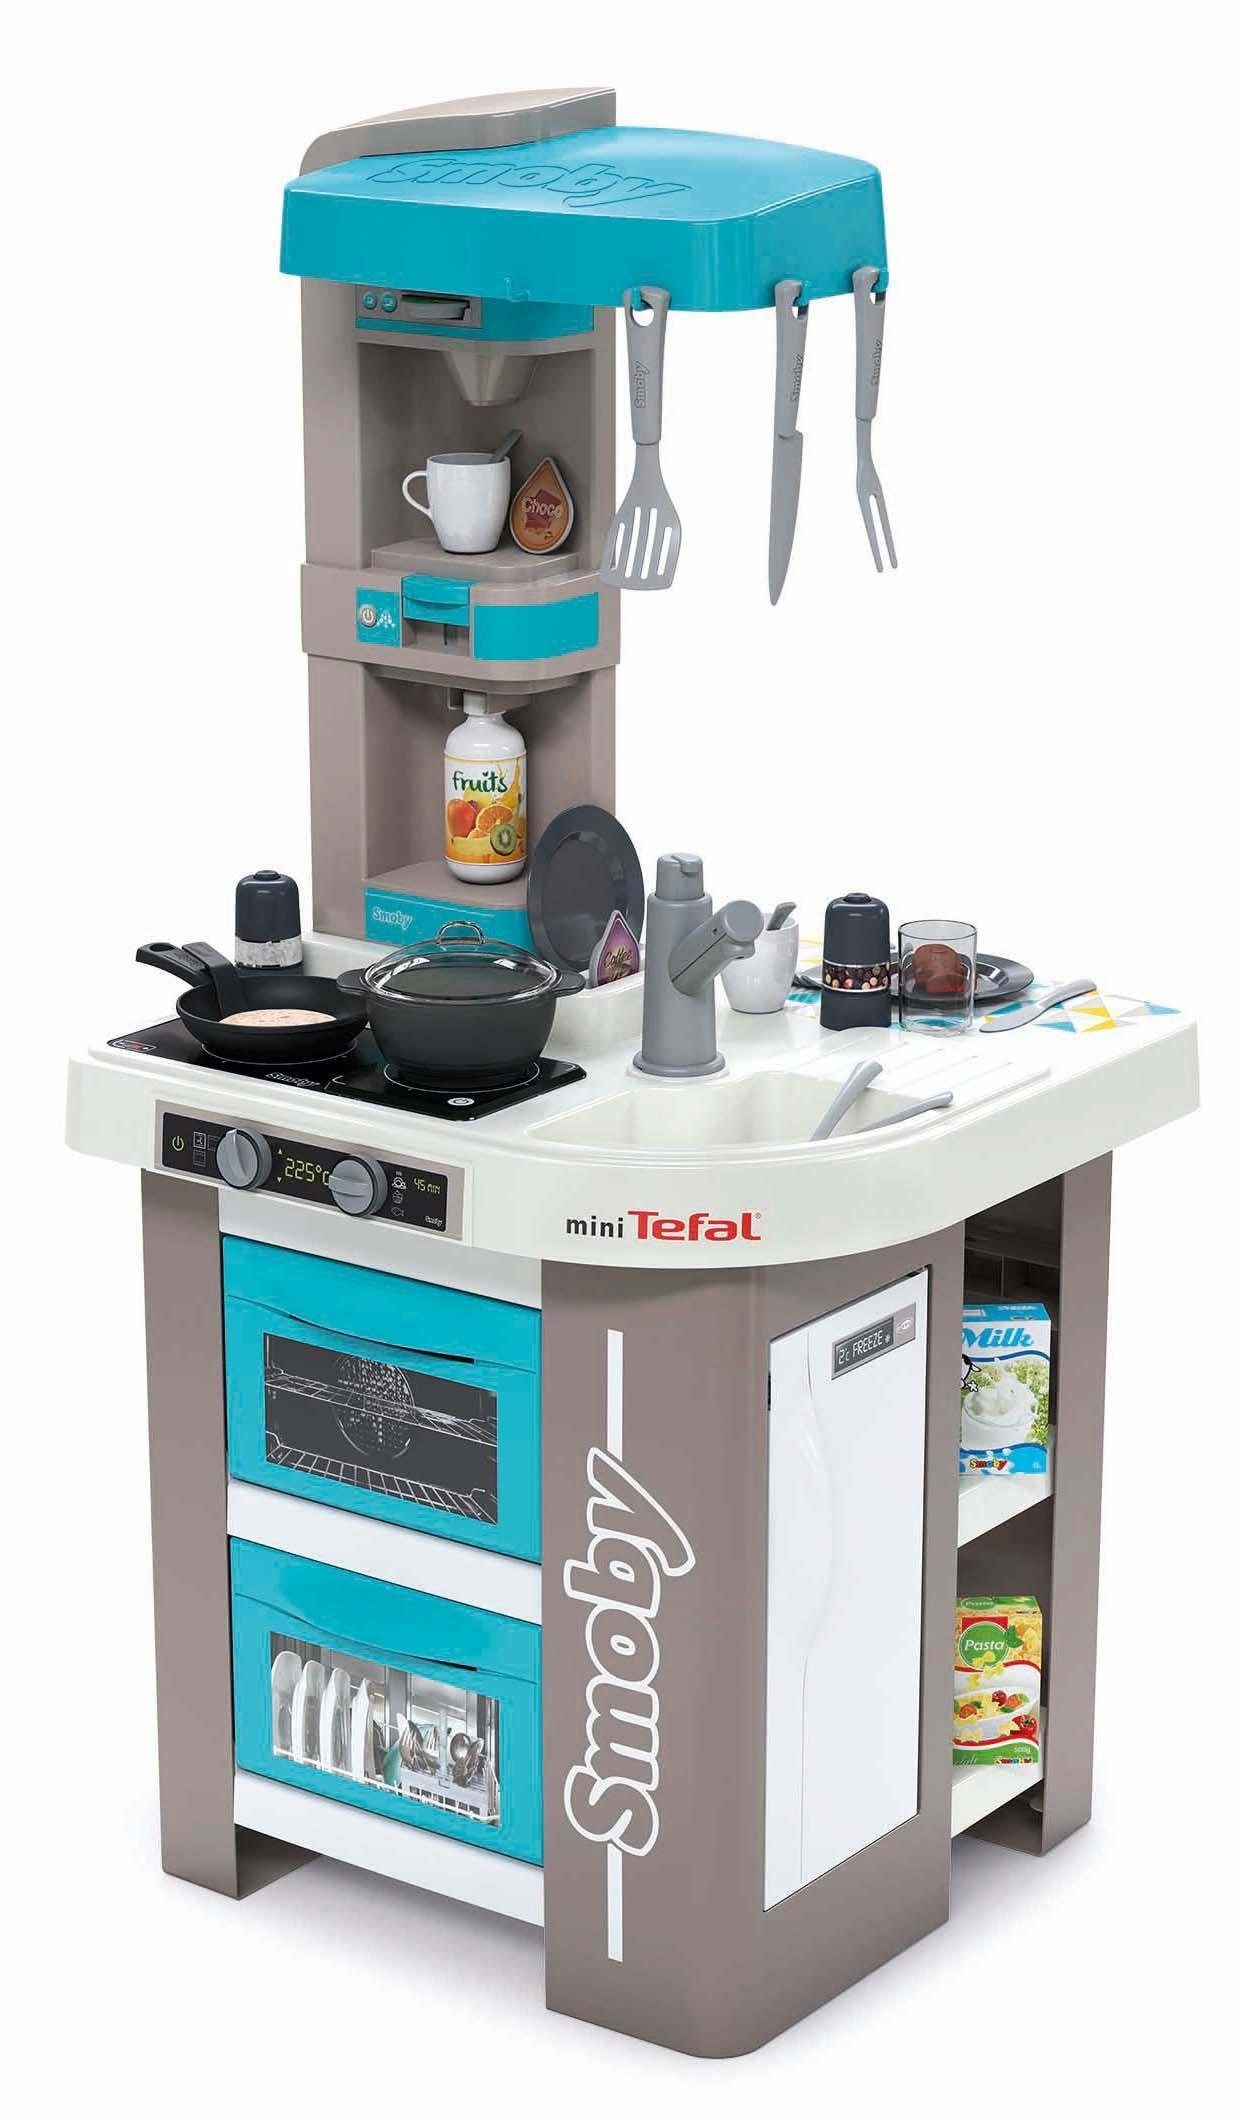 Klein Miele Küche Triangel Smoby Spielküche »tefal Studio Bubble Küche«, Made In Europe | Baur